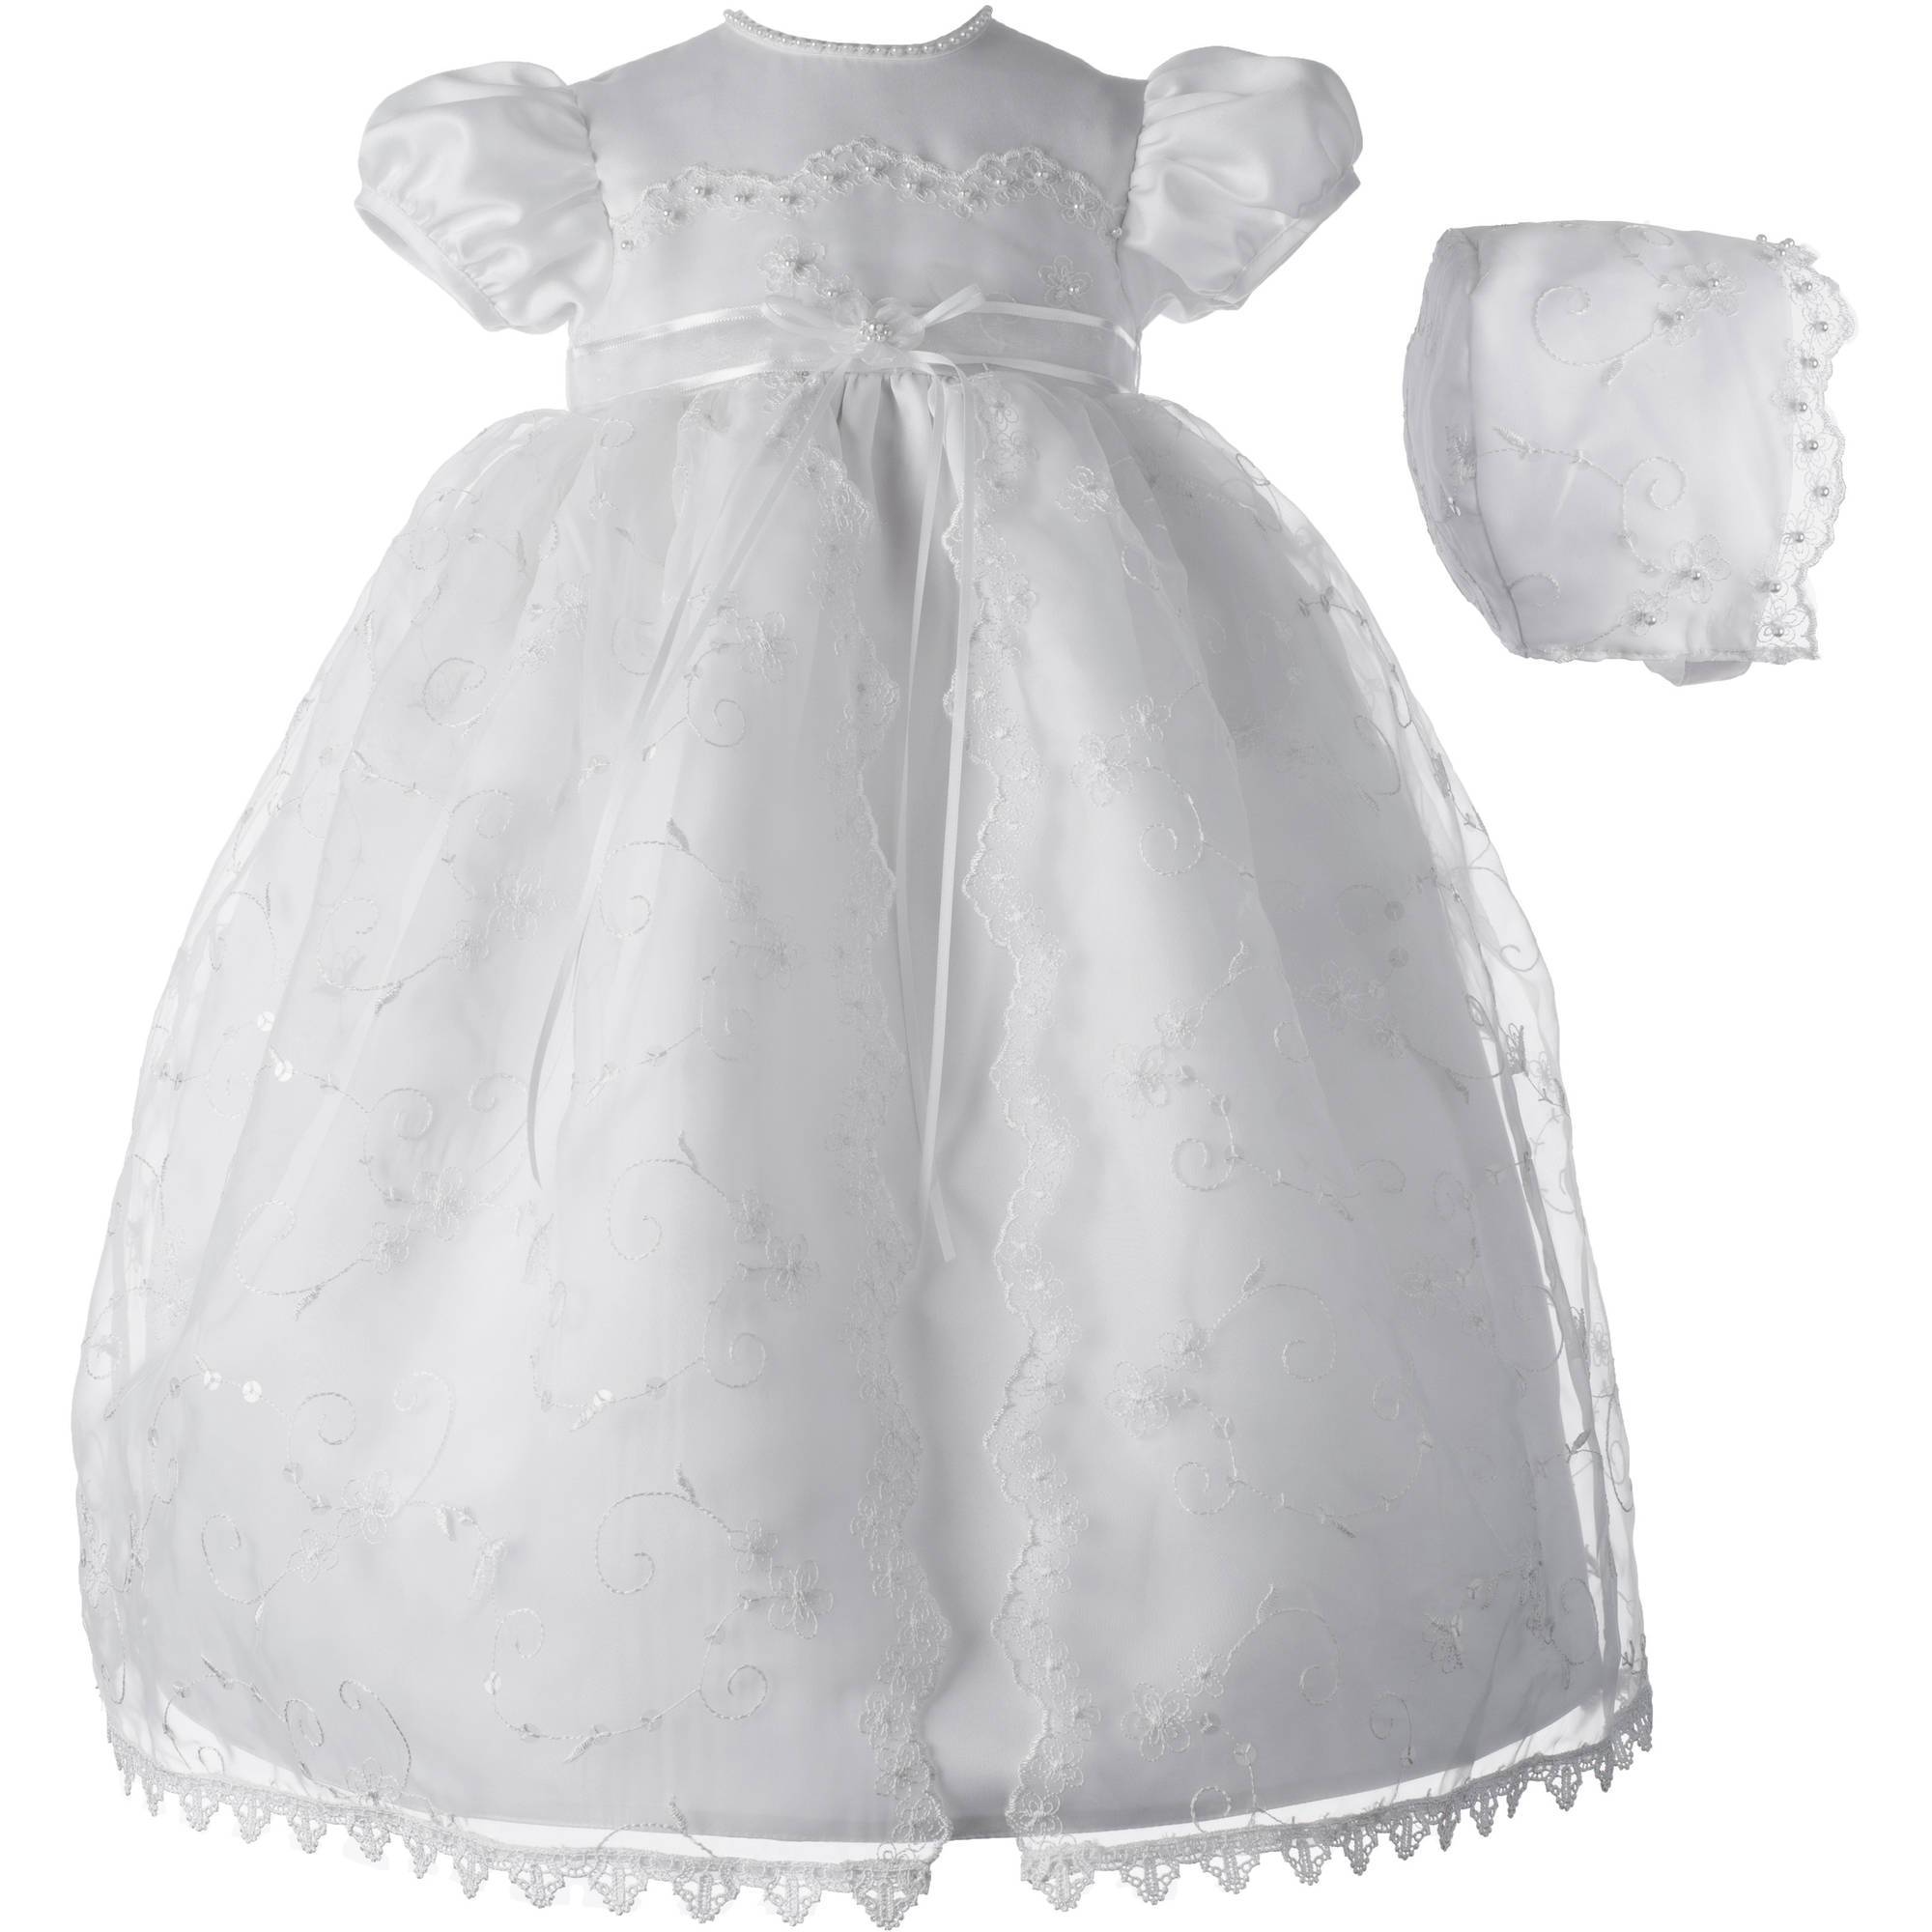 Christening Baptism Newborn Baby Girl Special Occasion Girls Long Embroidered Organza Split Front Skirt Over Bridal Satin Dress w/ Sequin Accents